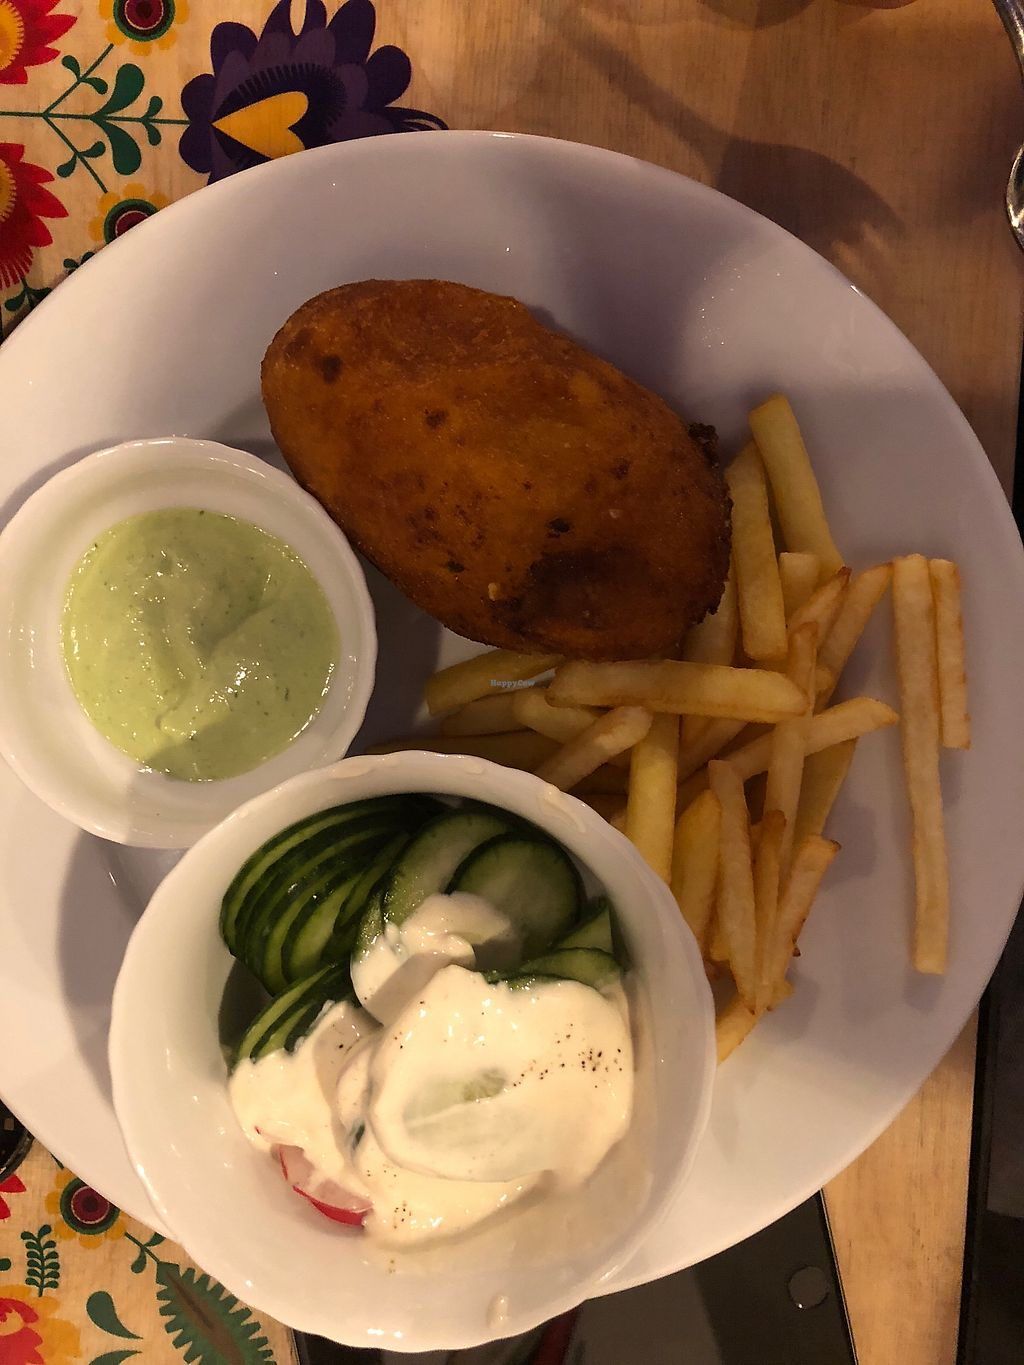 """Photo of Vege Bistro - Polish Vegan Food  by <a href=""""/members/profile/ElmiraDewes"""">ElmiraDewes</a> <br/>Kotlet de volaille  <br/> January 27, 2018  - <a href='/contact/abuse/image/58057/351536'>Report</a>"""